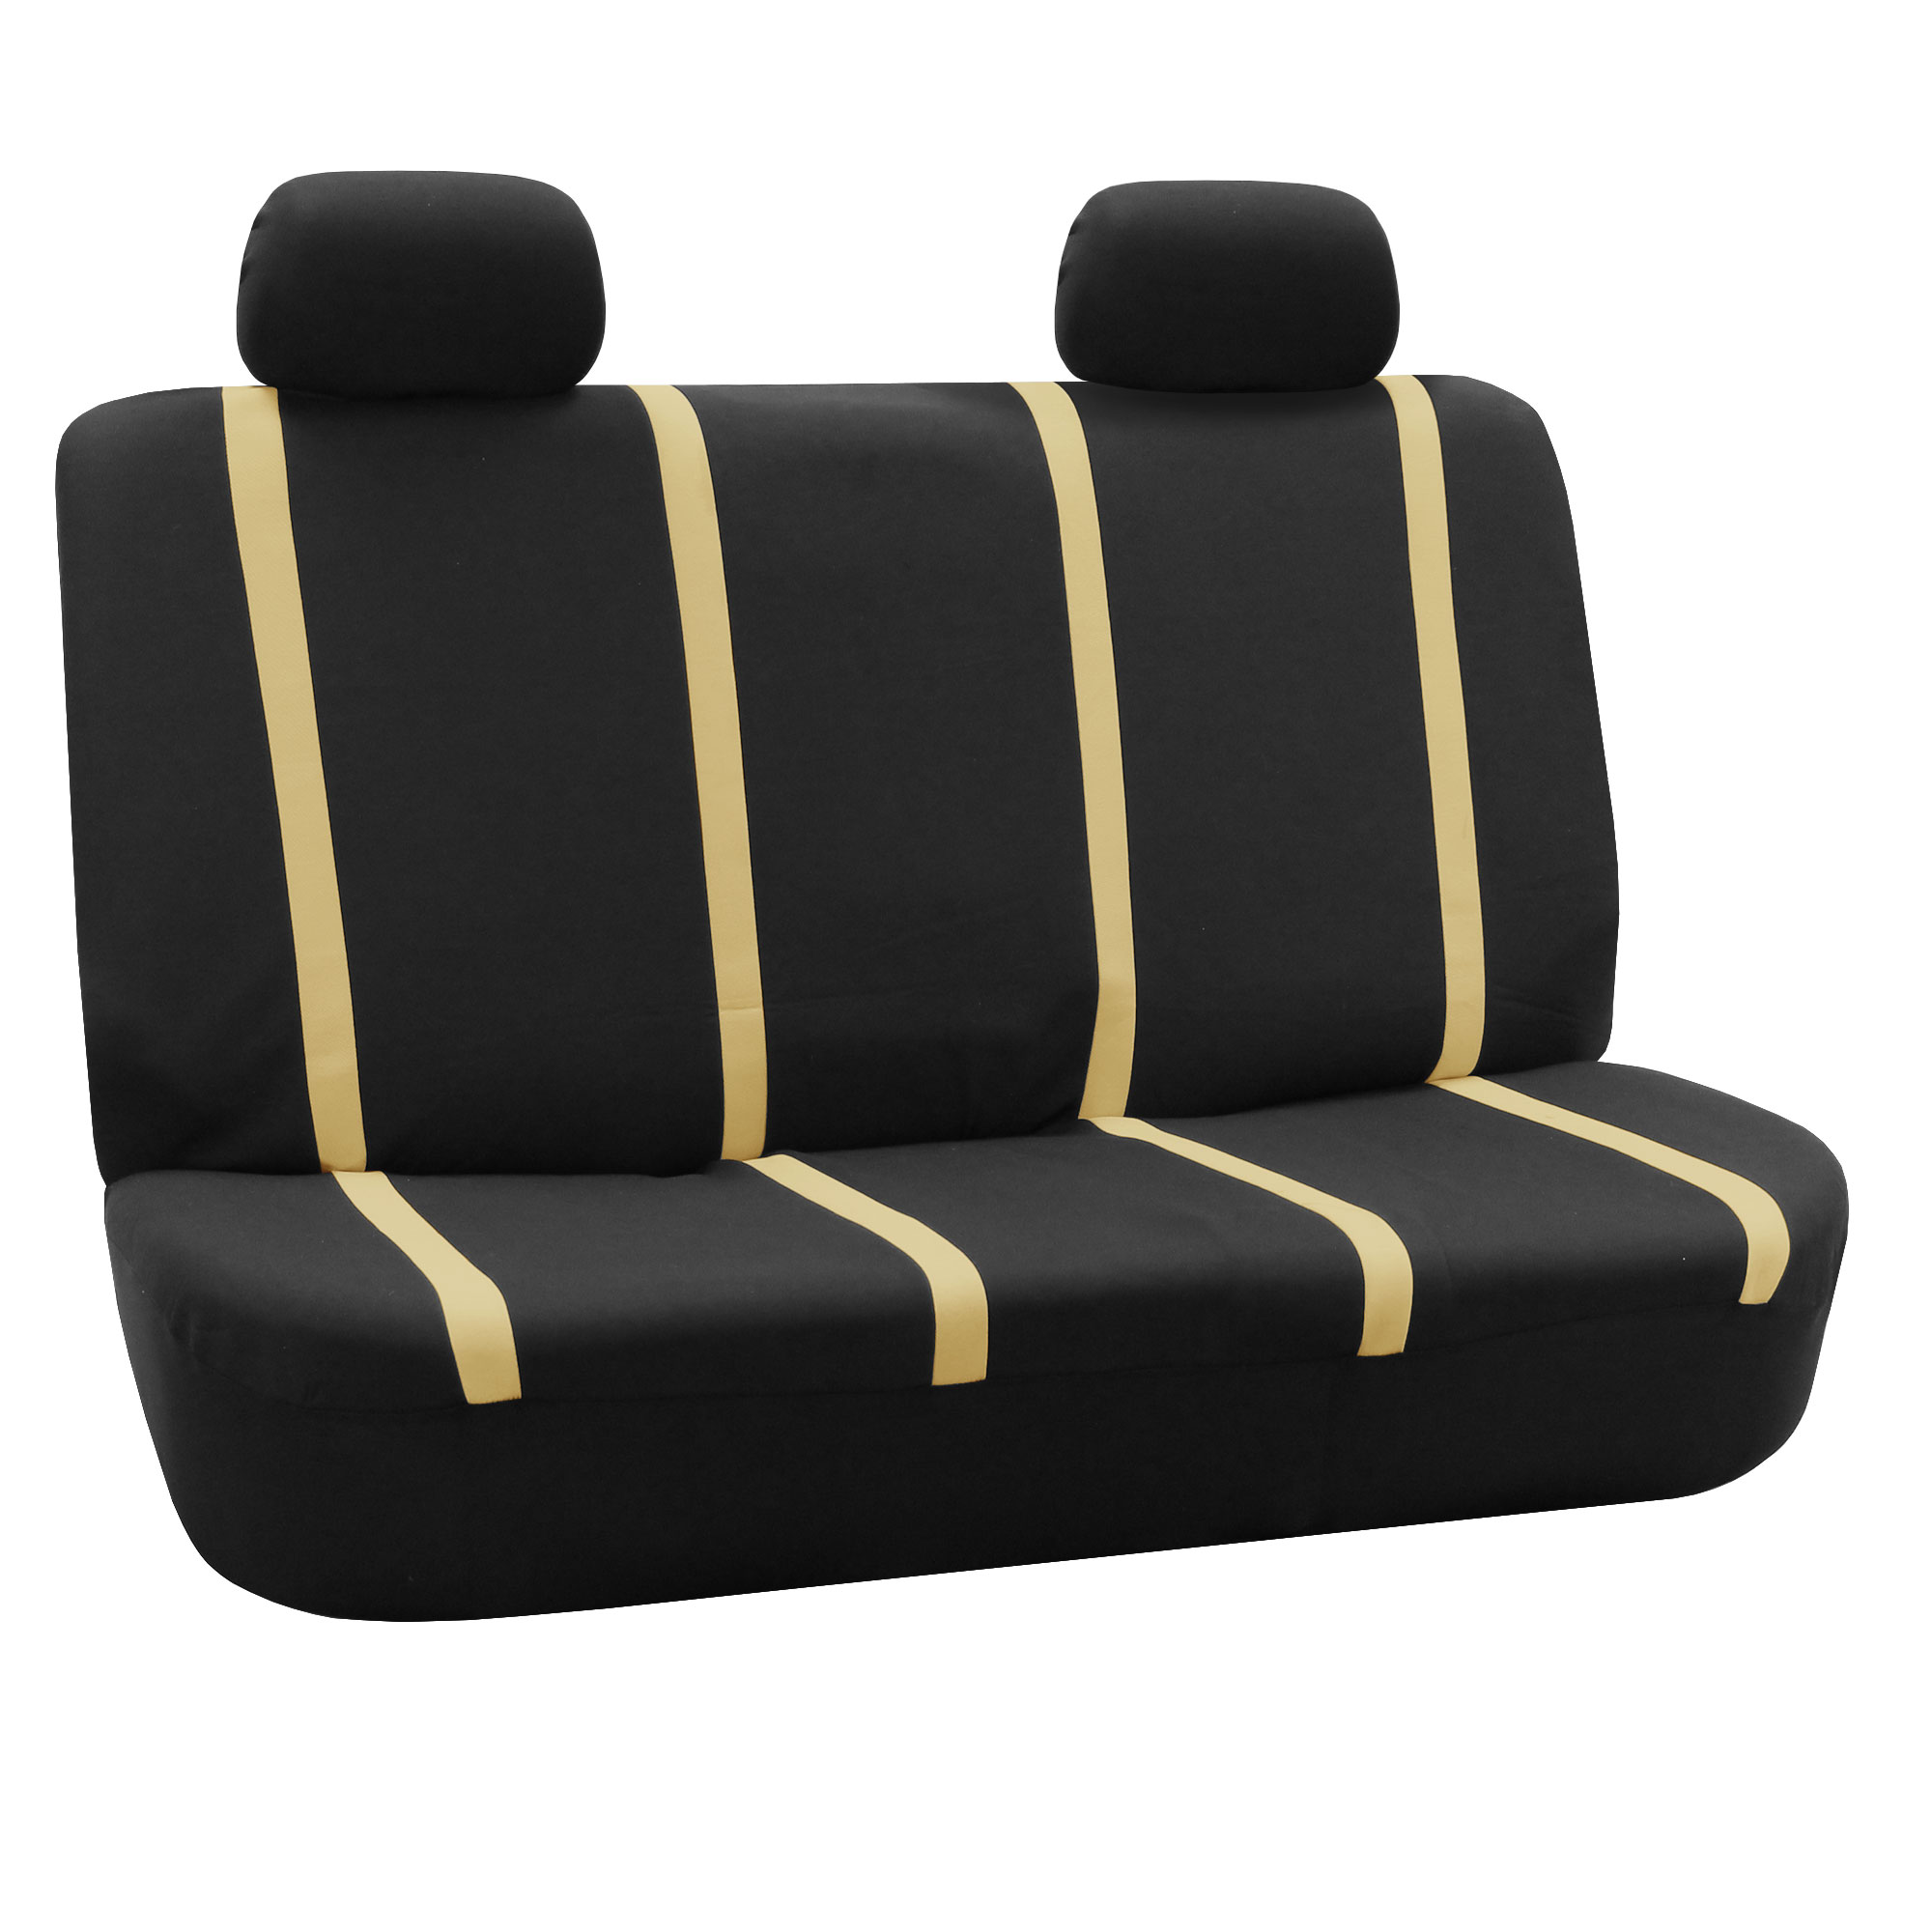 car seat covers complete full set for auto vehicle upholstery ebay. Black Bedroom Furniture Sets. Home Design Ideas